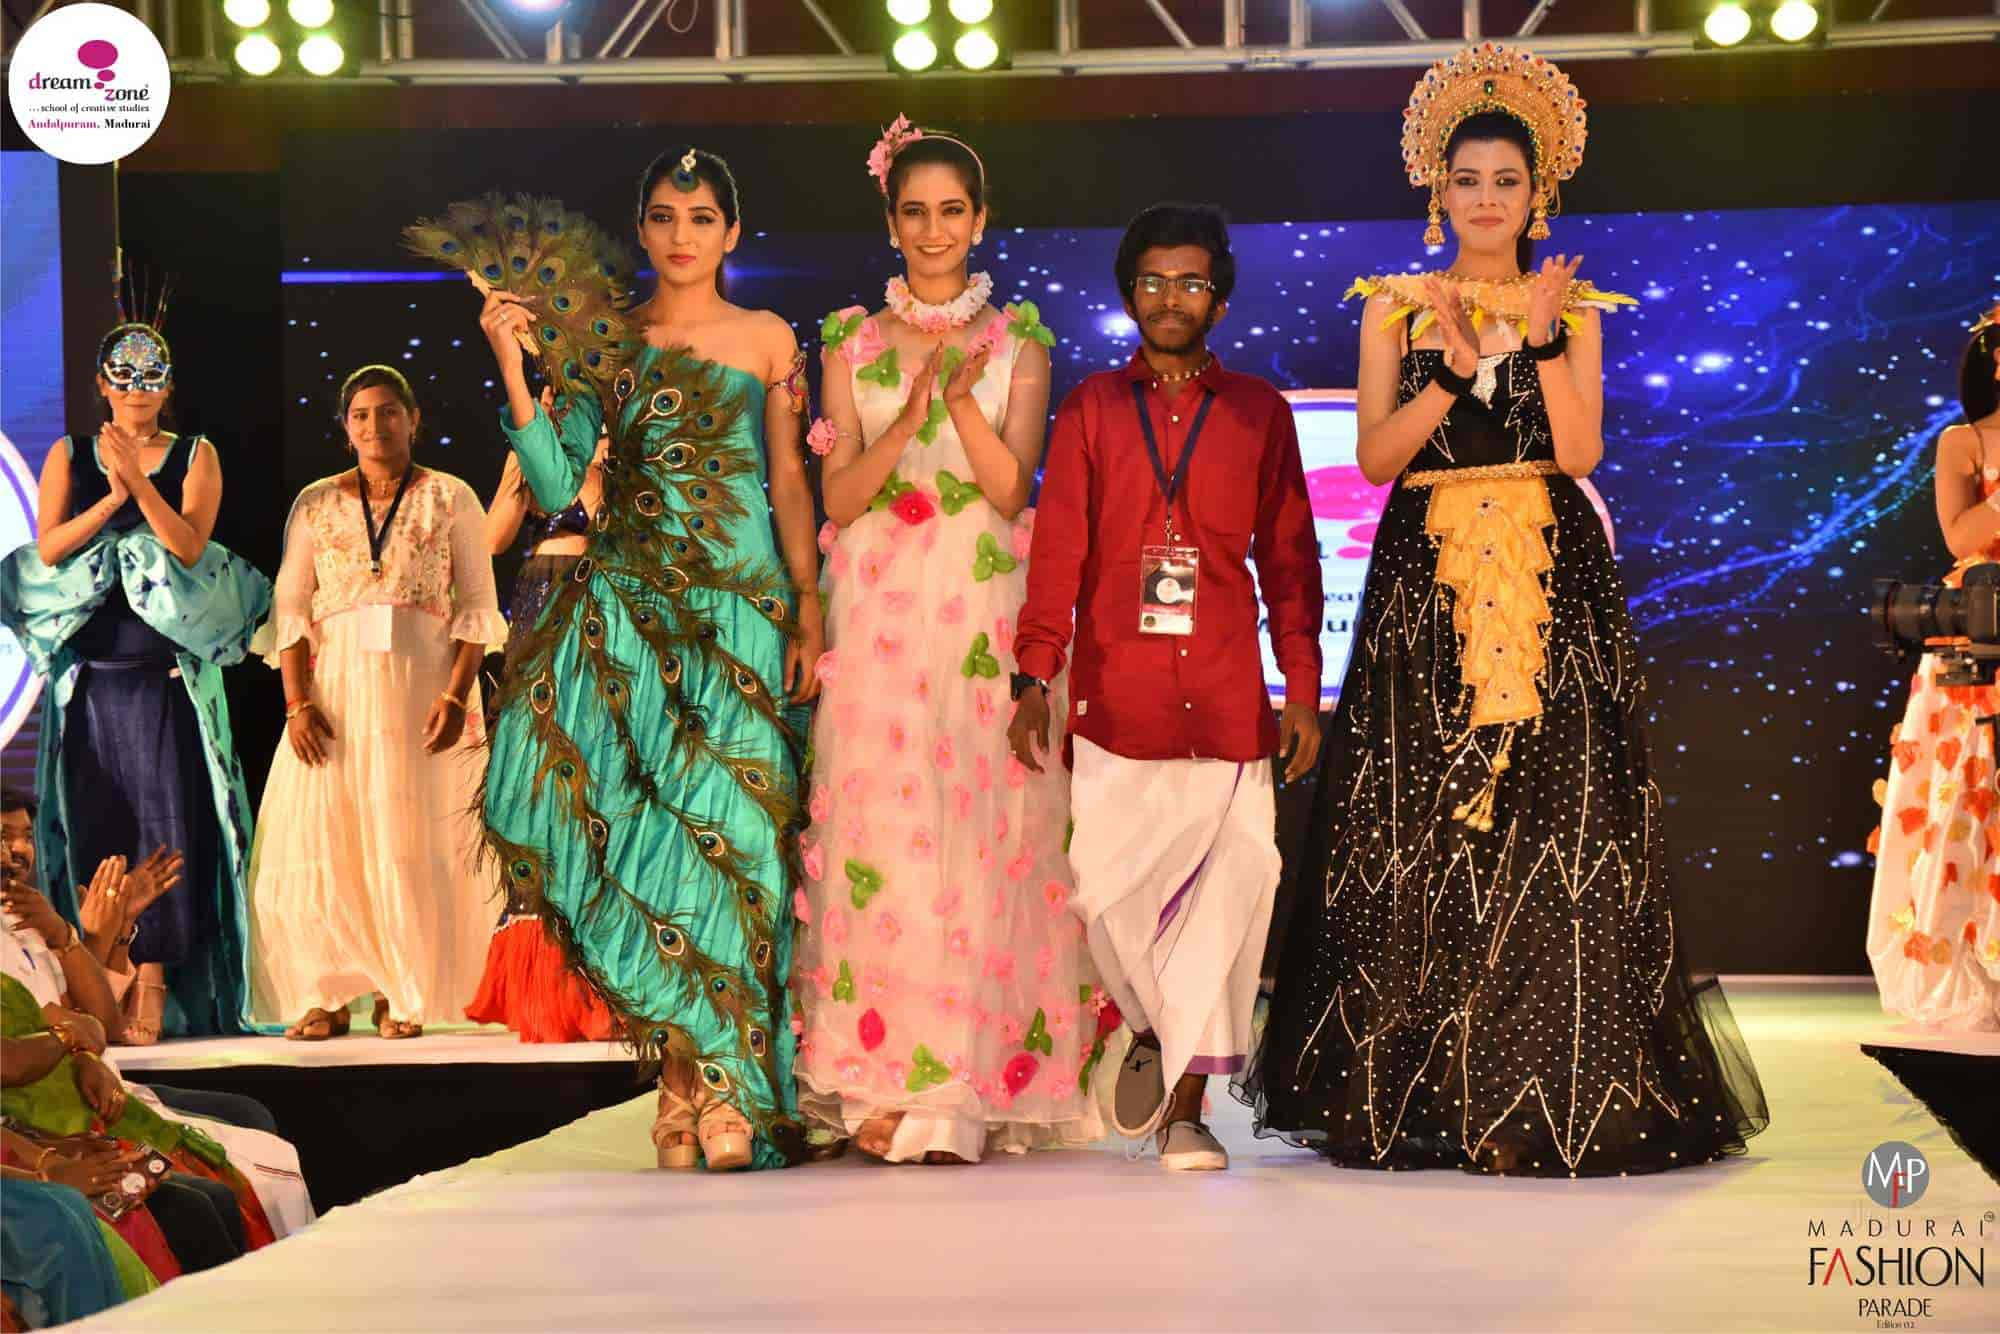 Top Bsc Fashion Designing Institutes In Madurai Best Fashion Design Courses Justdial